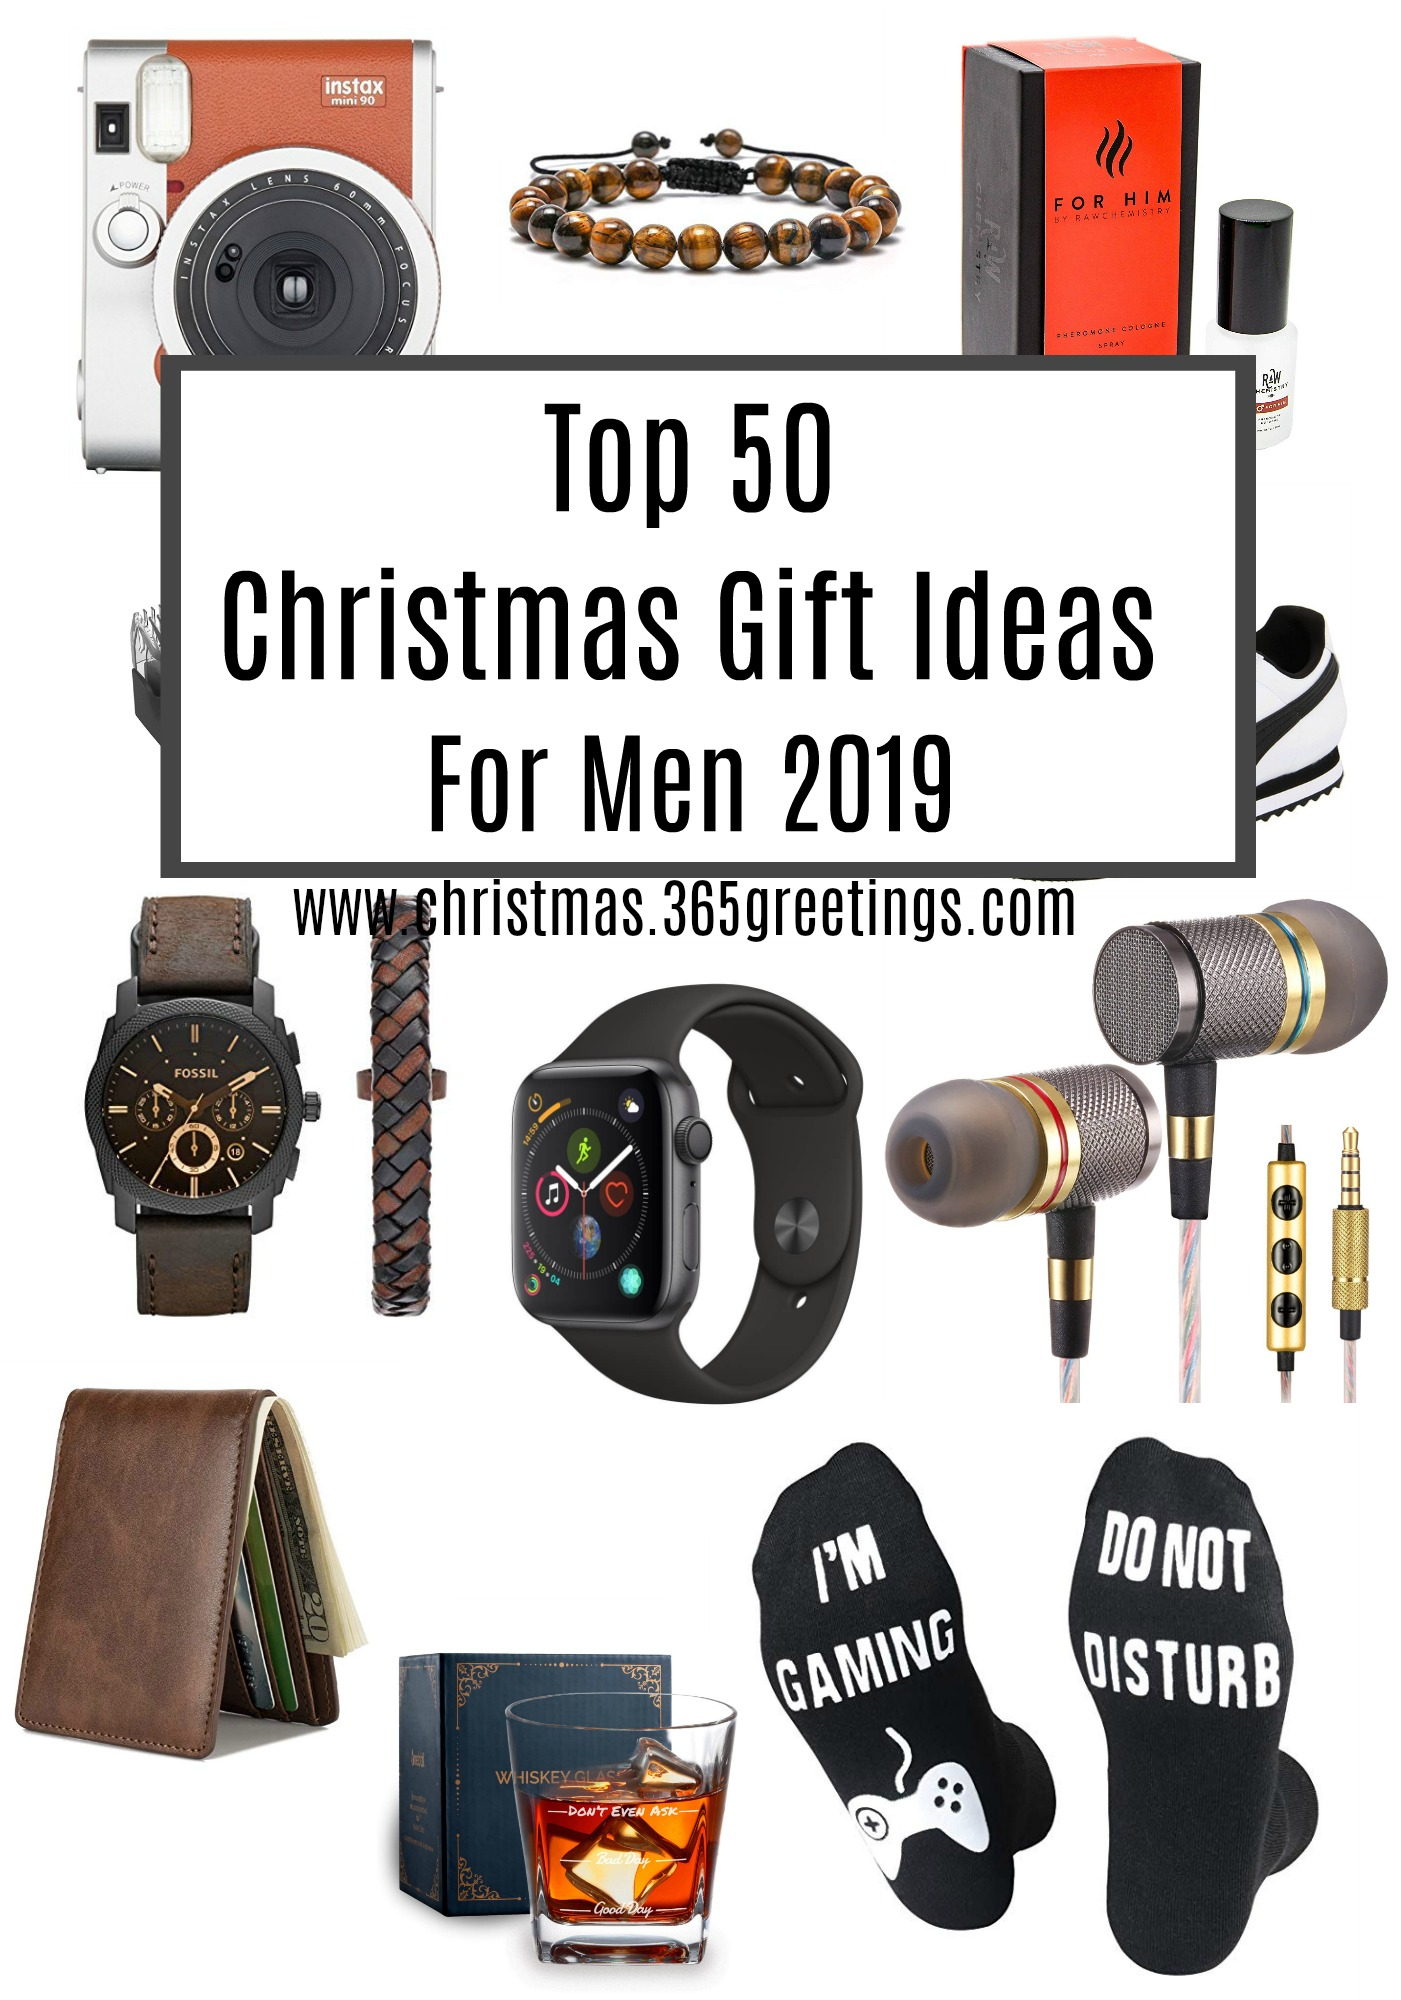 Tools Guys Want For Christmas 2020 Top Christmas Gifts for Men 2020   Christmas Celebration   All